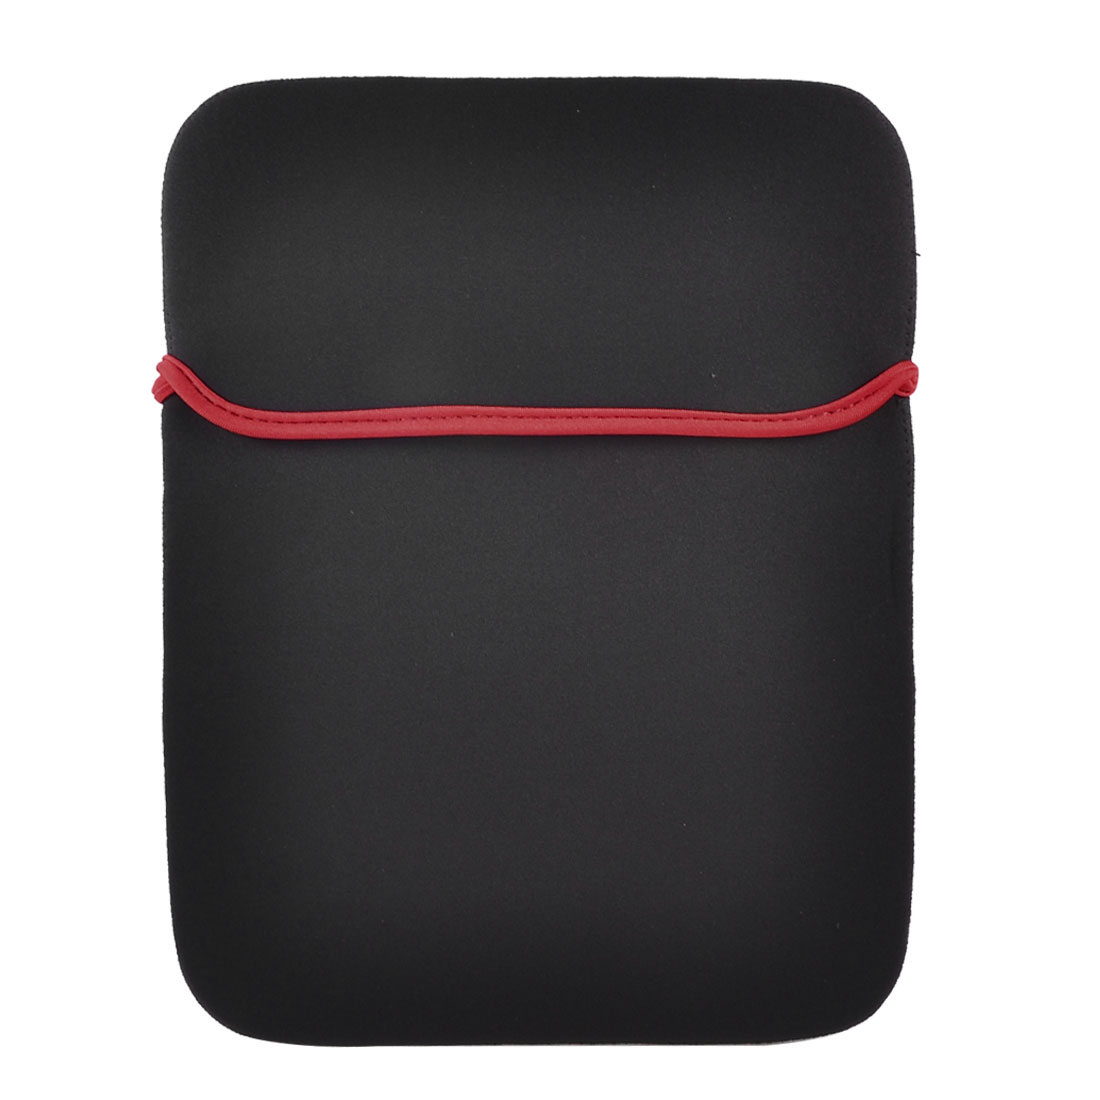 "10"" 10.1"" Tablet Laptop Red Brim Black Neoprene Sleeve Bag Case Pouch Cover"